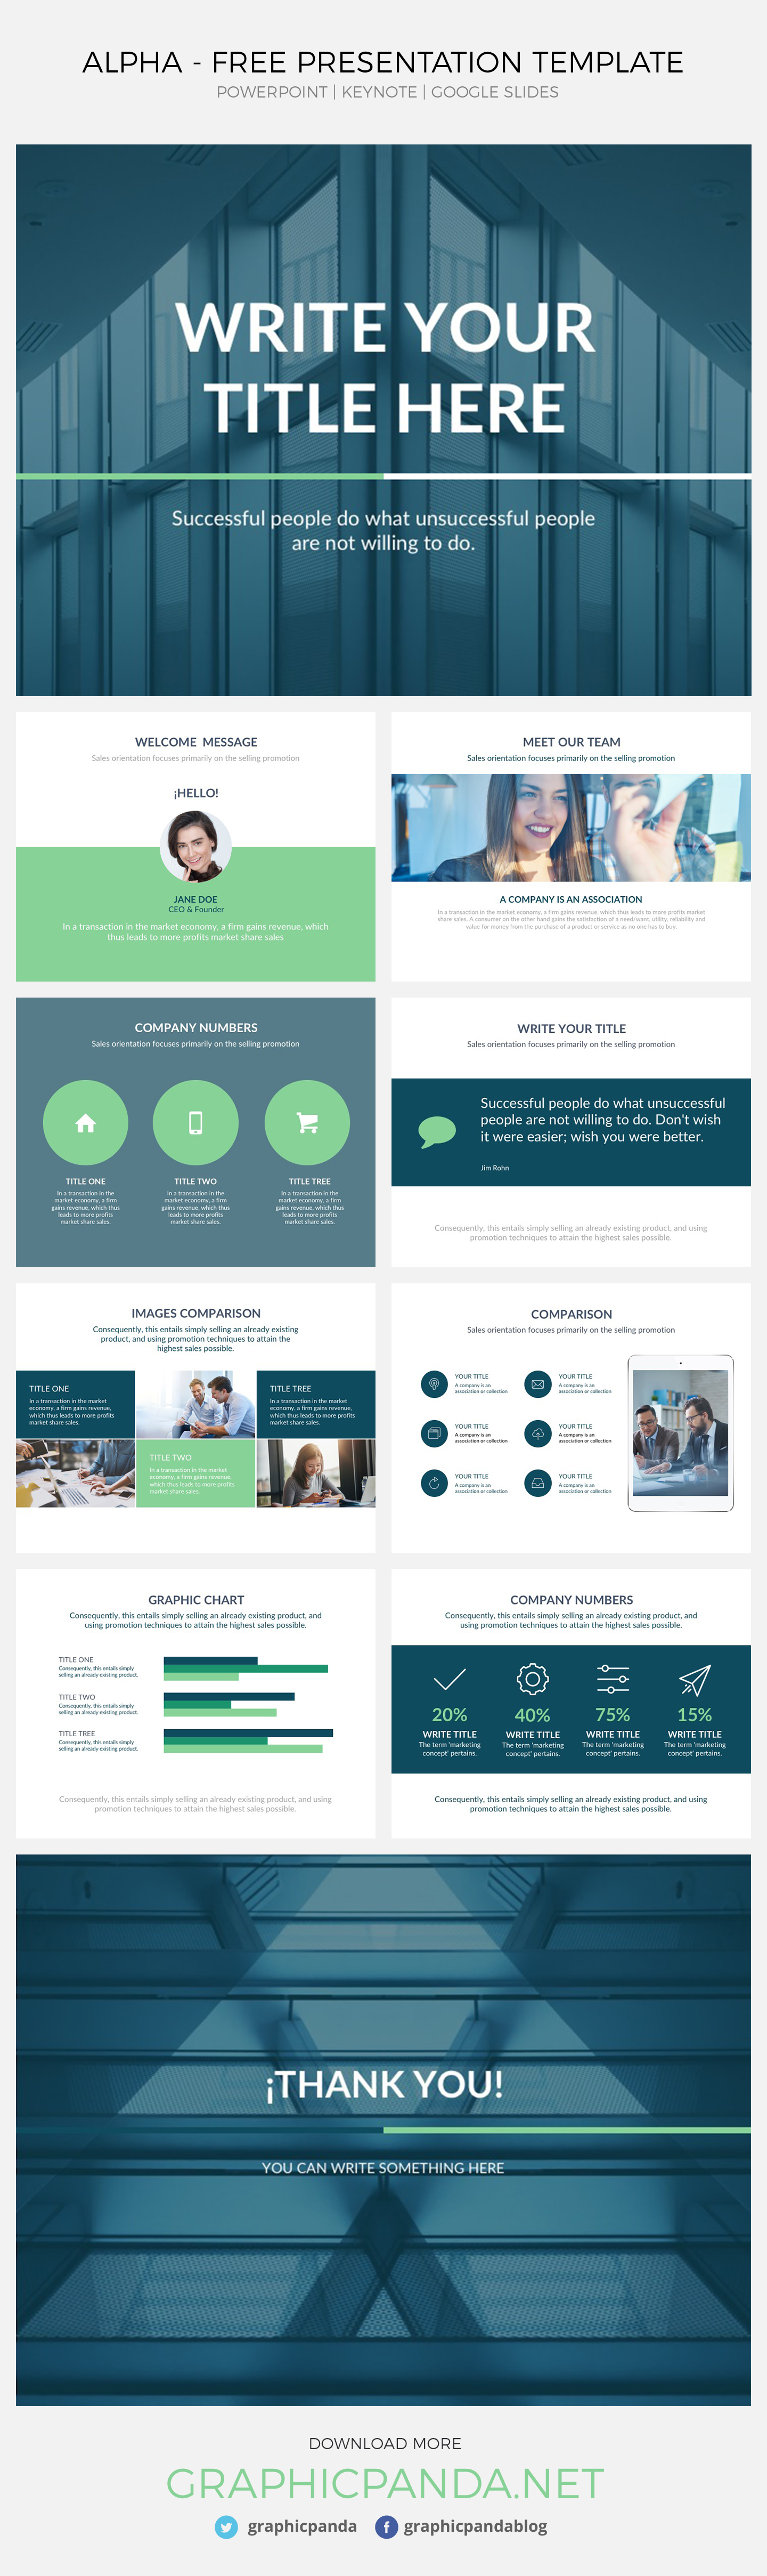 slides templates free download